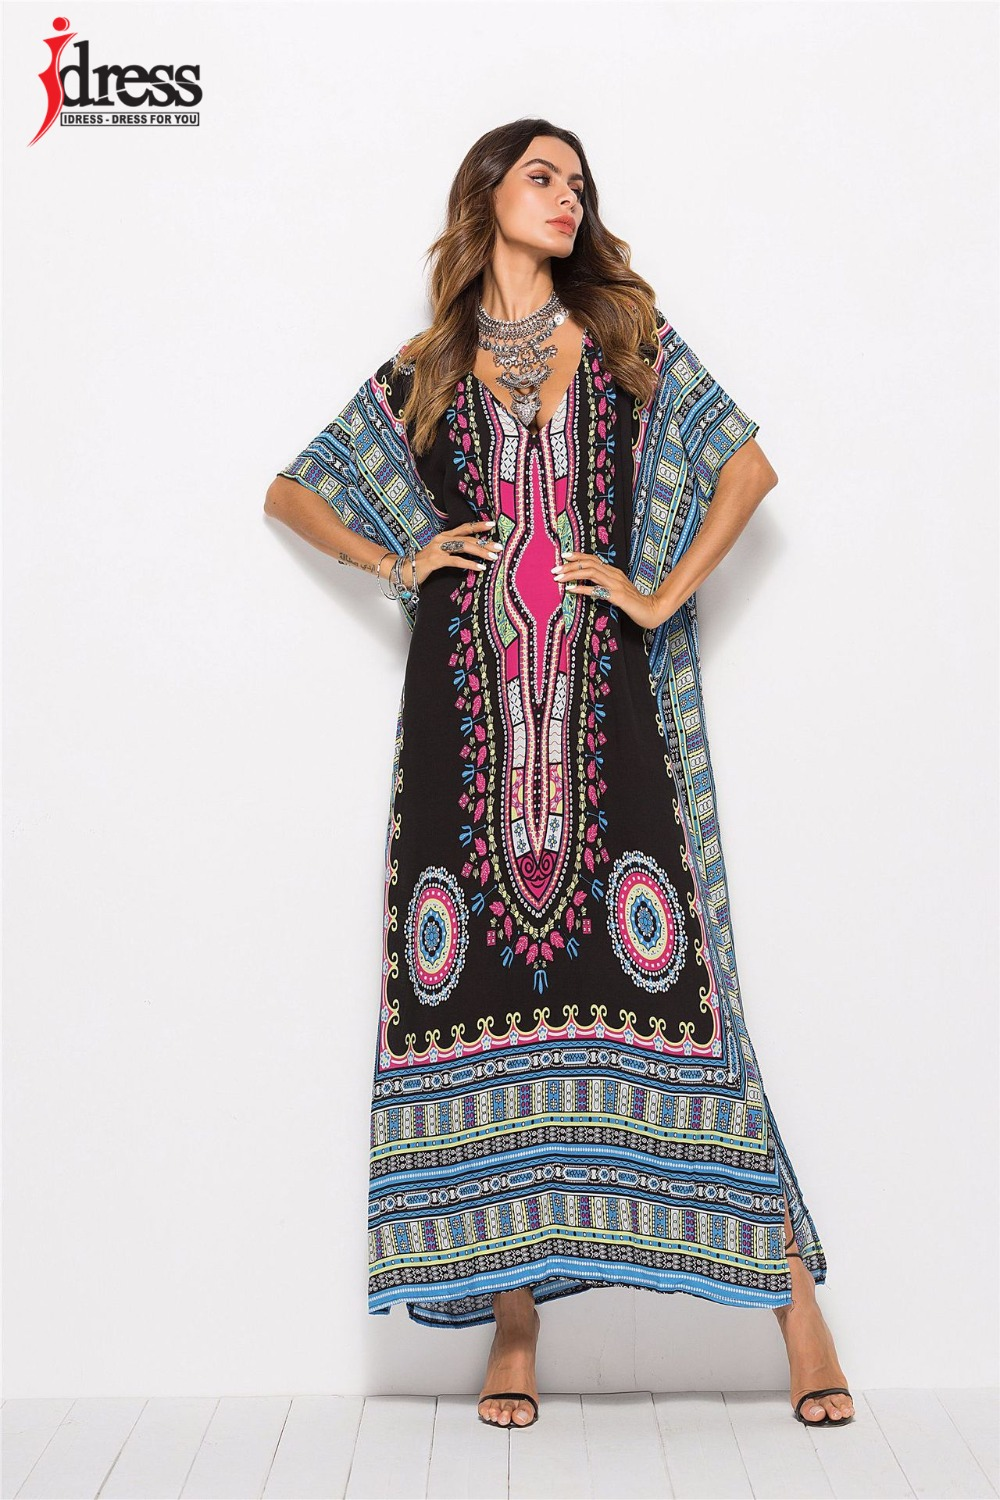 21b9b5ede Detail Feedback Questions about IDress Online Shopping India Ethnic ...